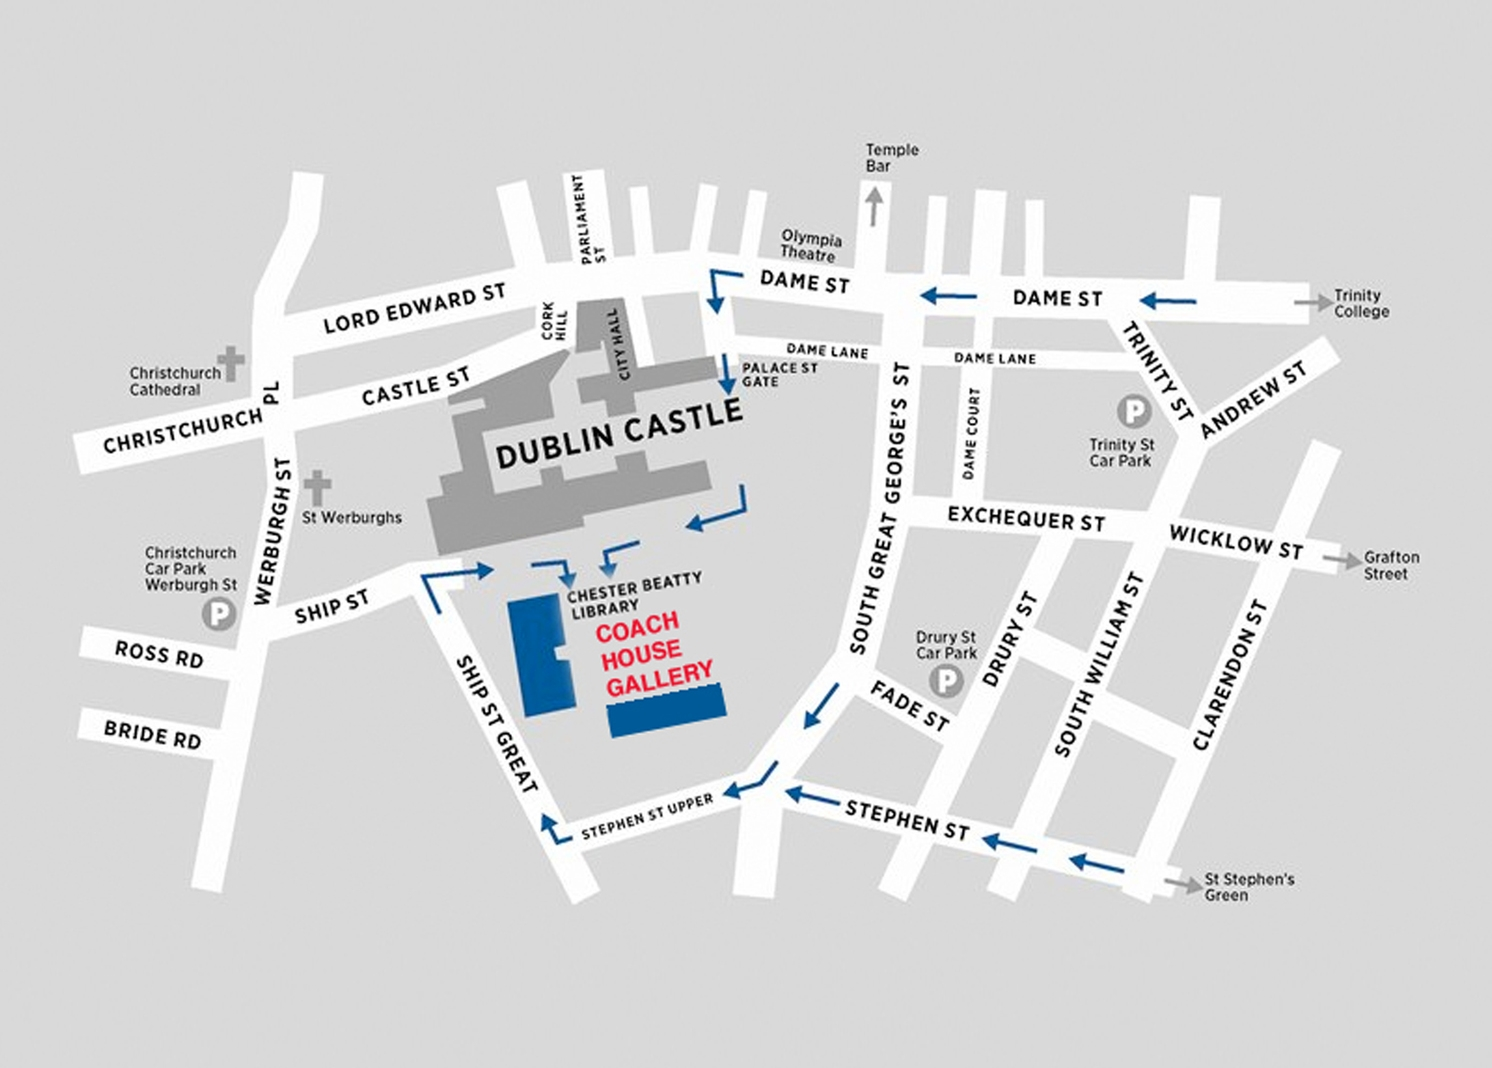 Find us at the Coach House Gallery